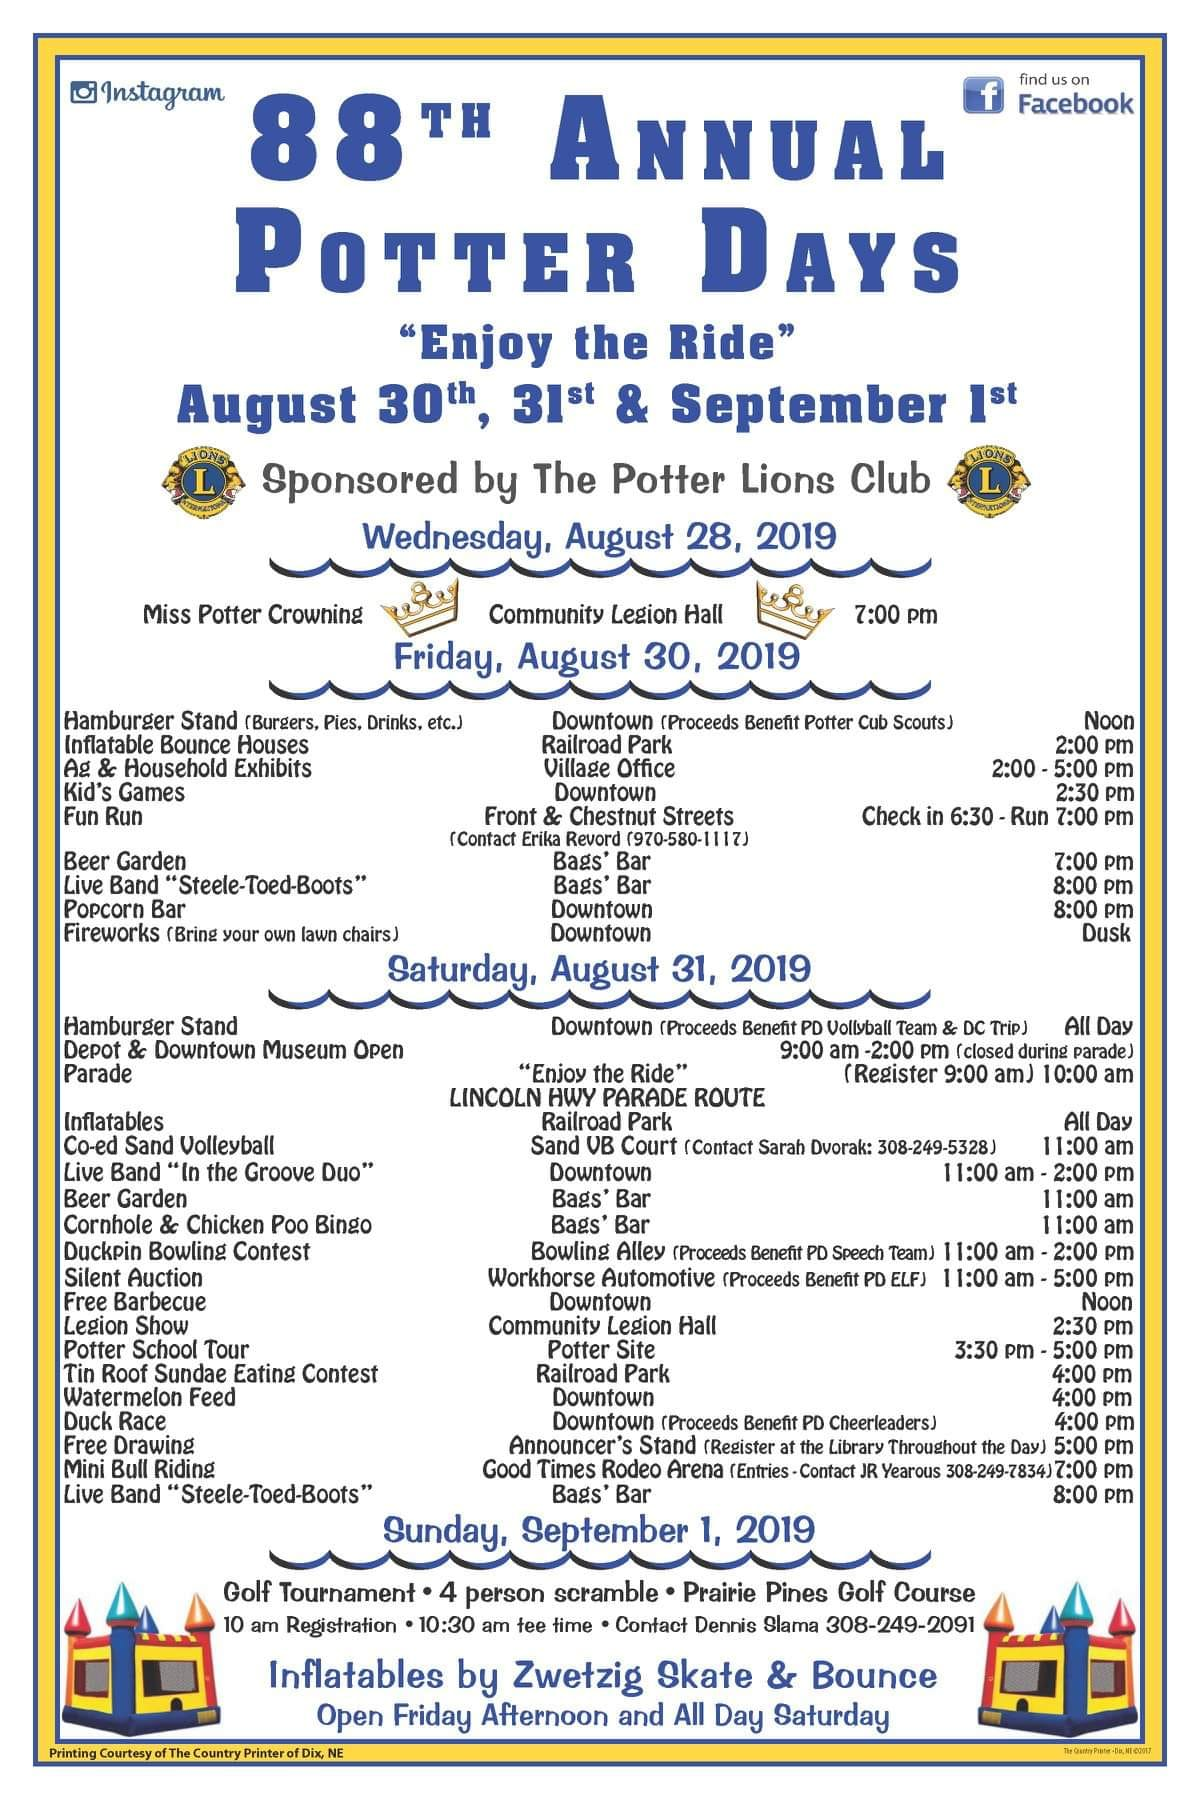 """Enjoy The Ride"" at 88th Annual Potter Days"